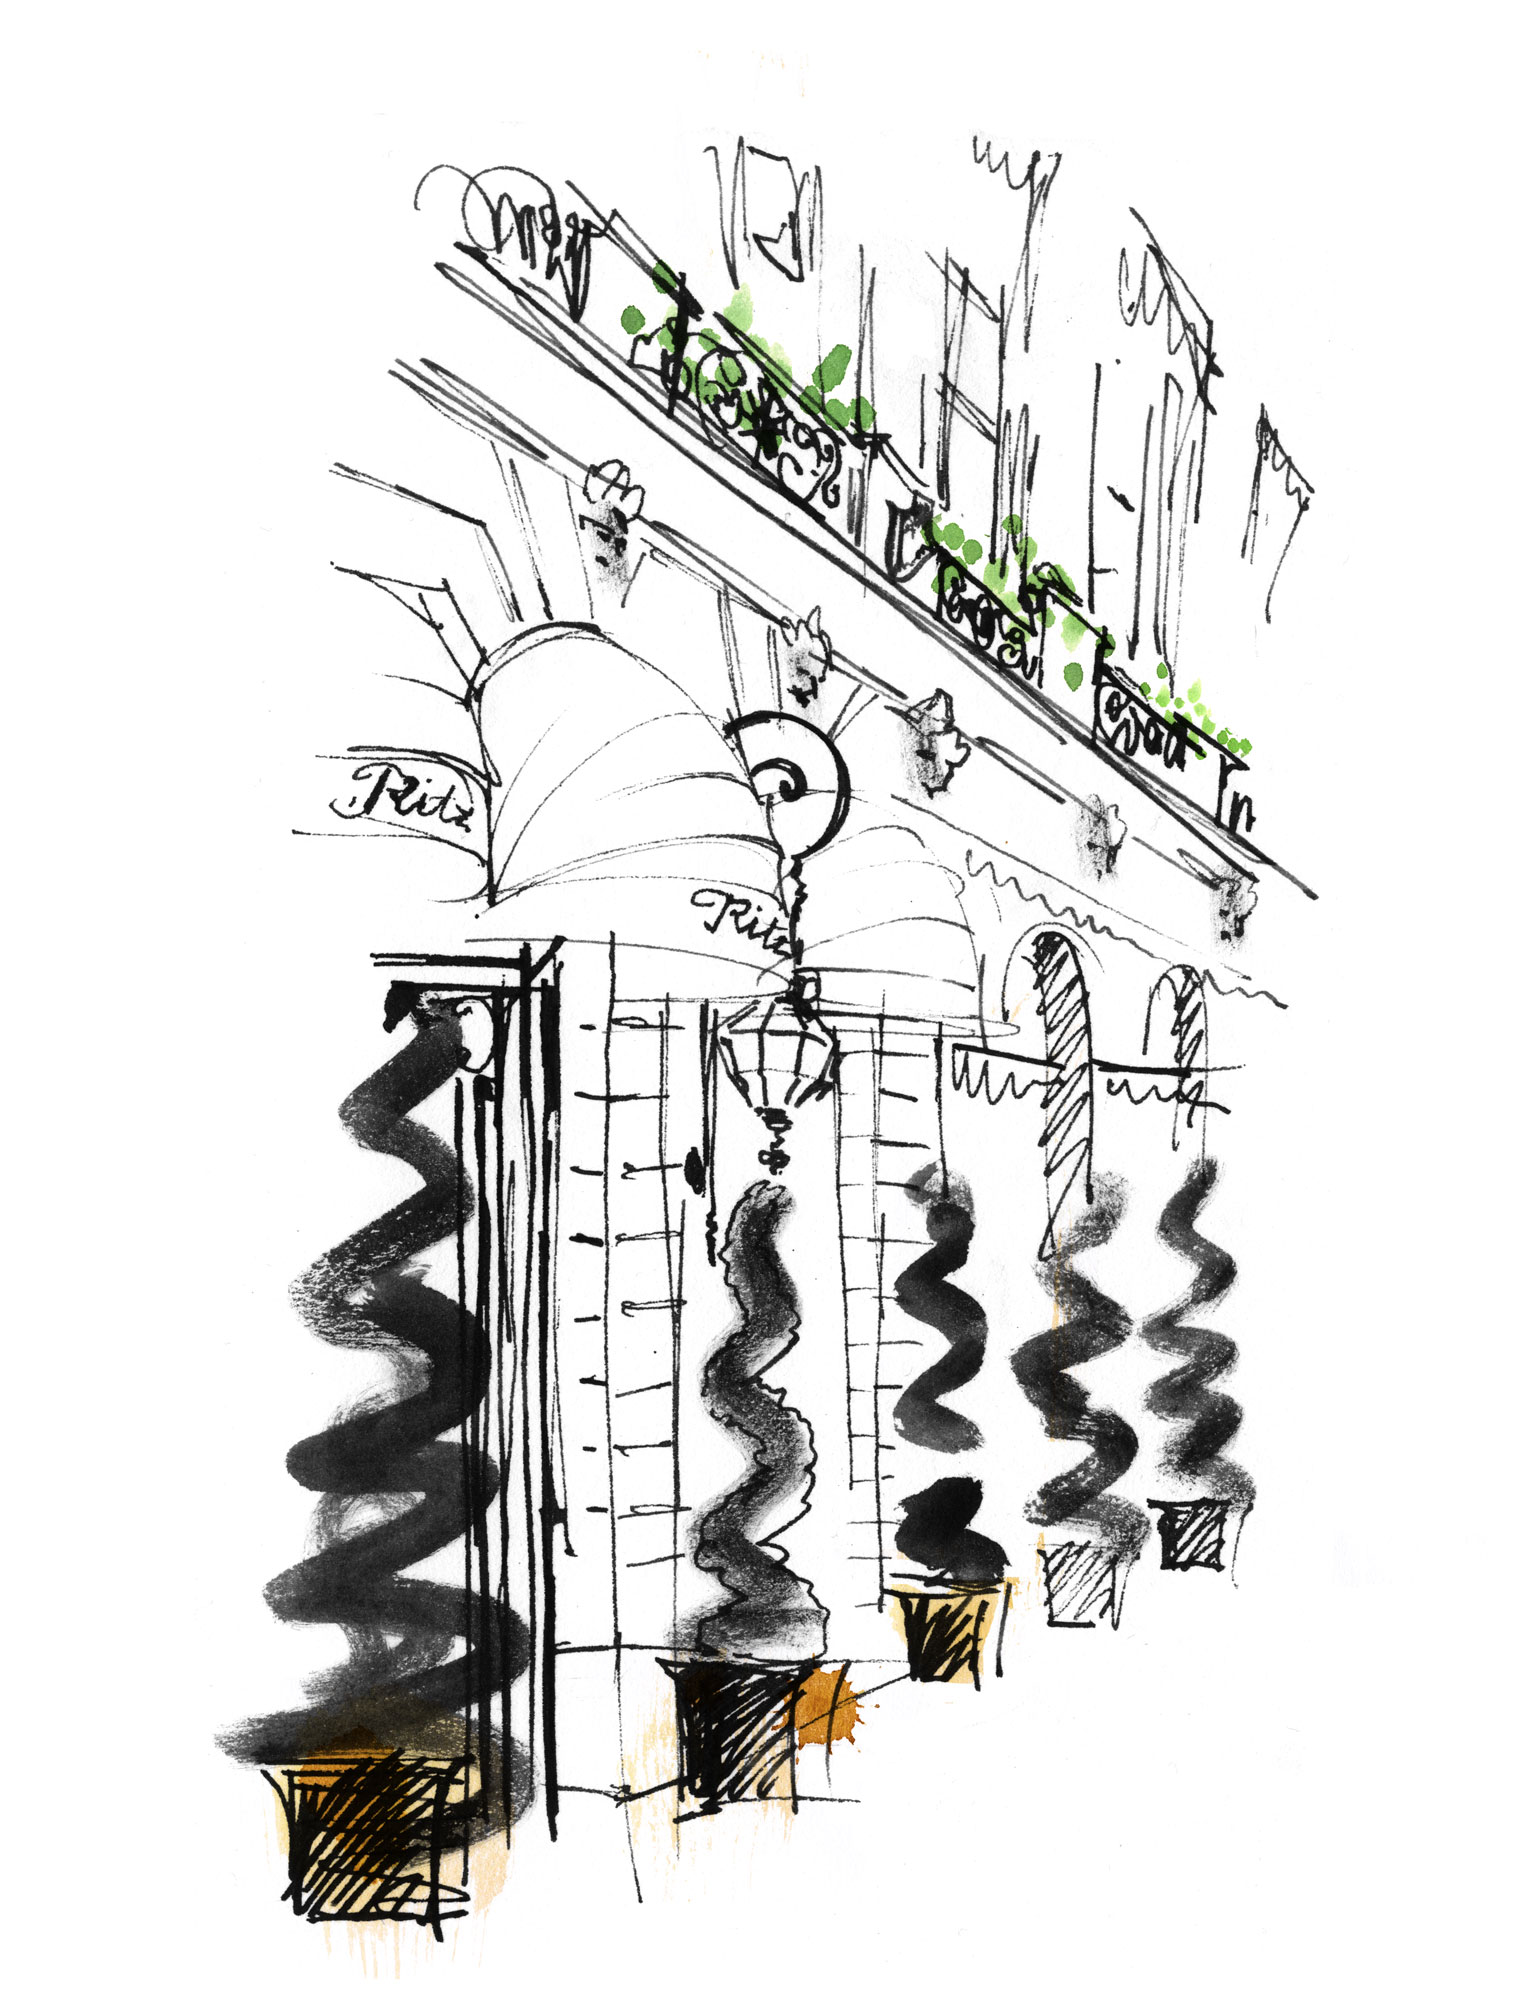 Lovisa-Burfitt-illustration-Ritz-Paris